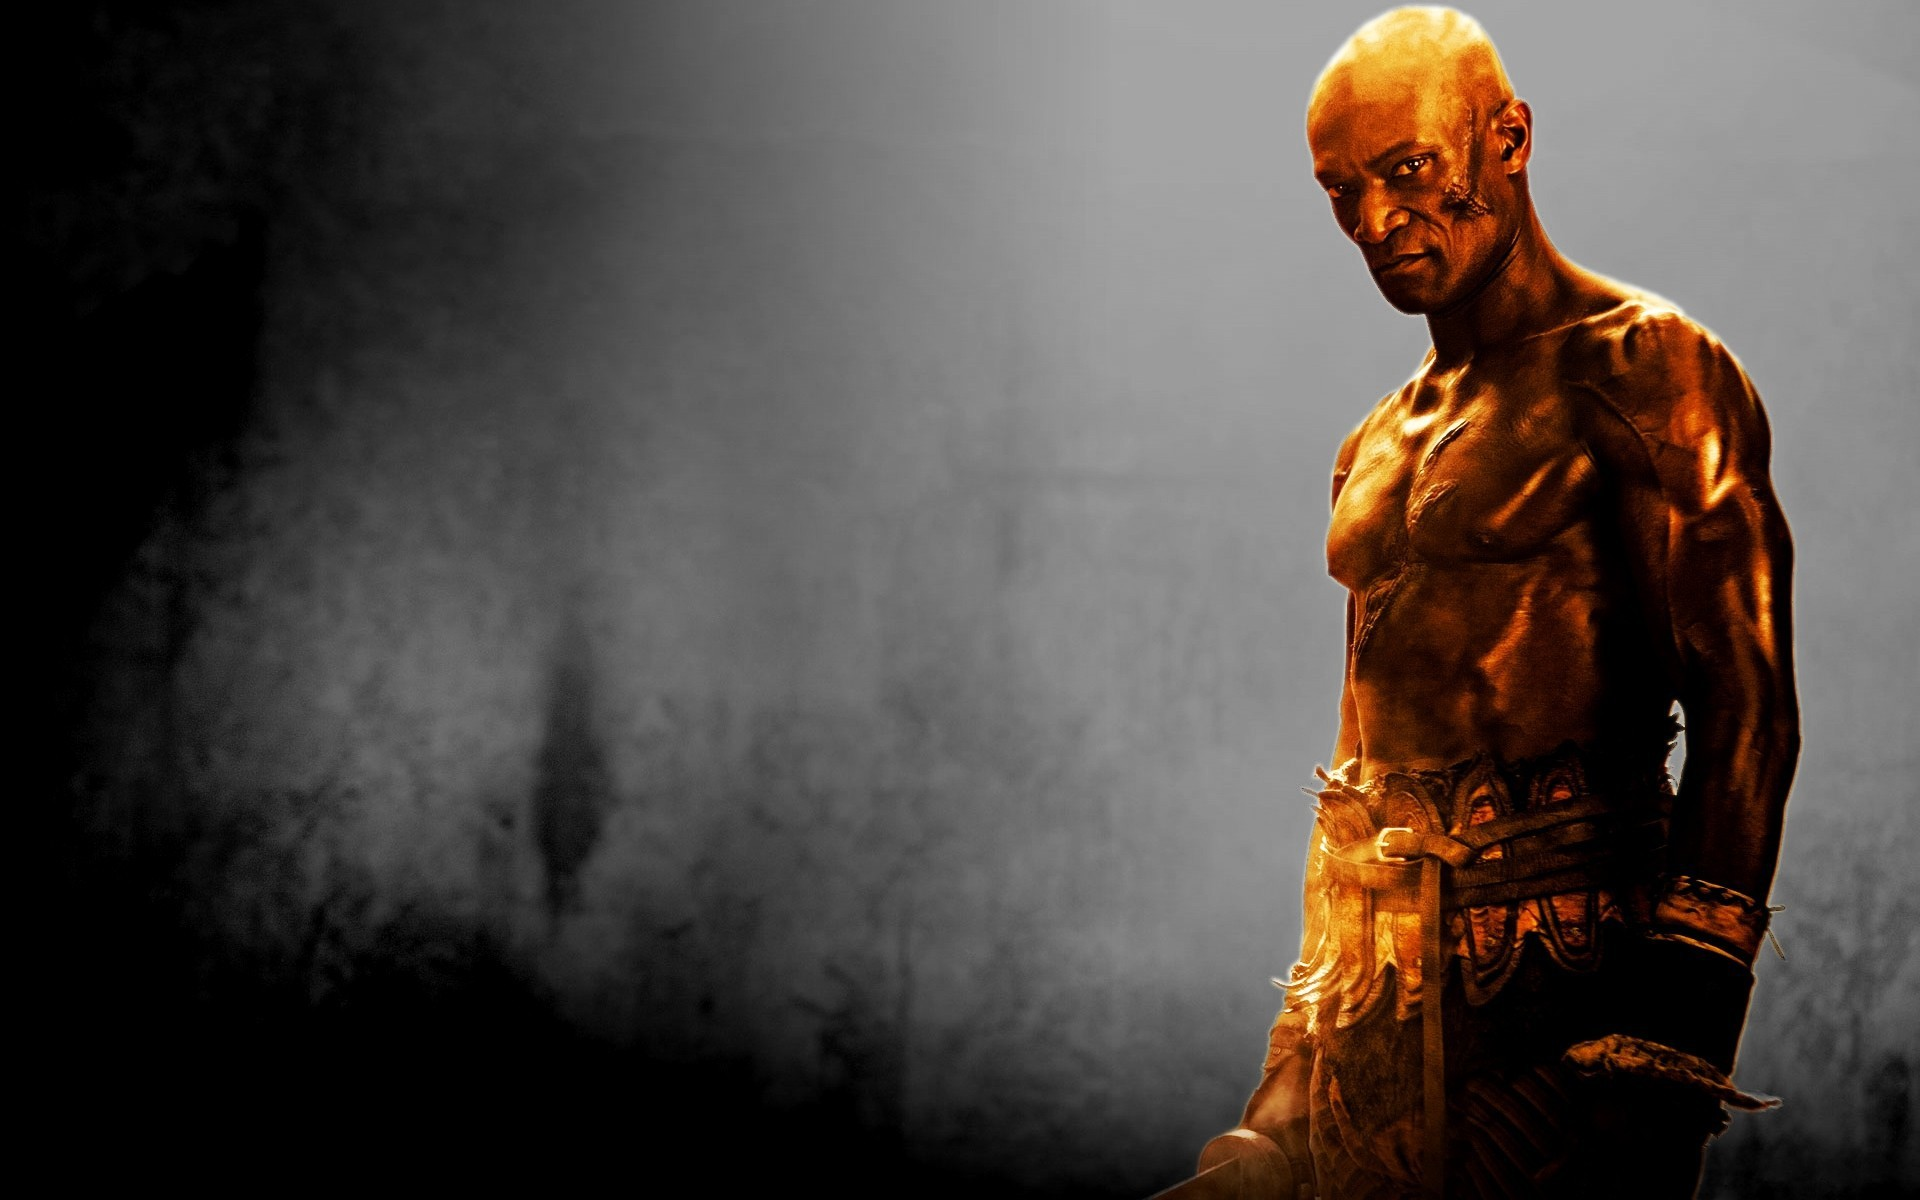 Gladiator wallpapers hd desktop backgrounds images and